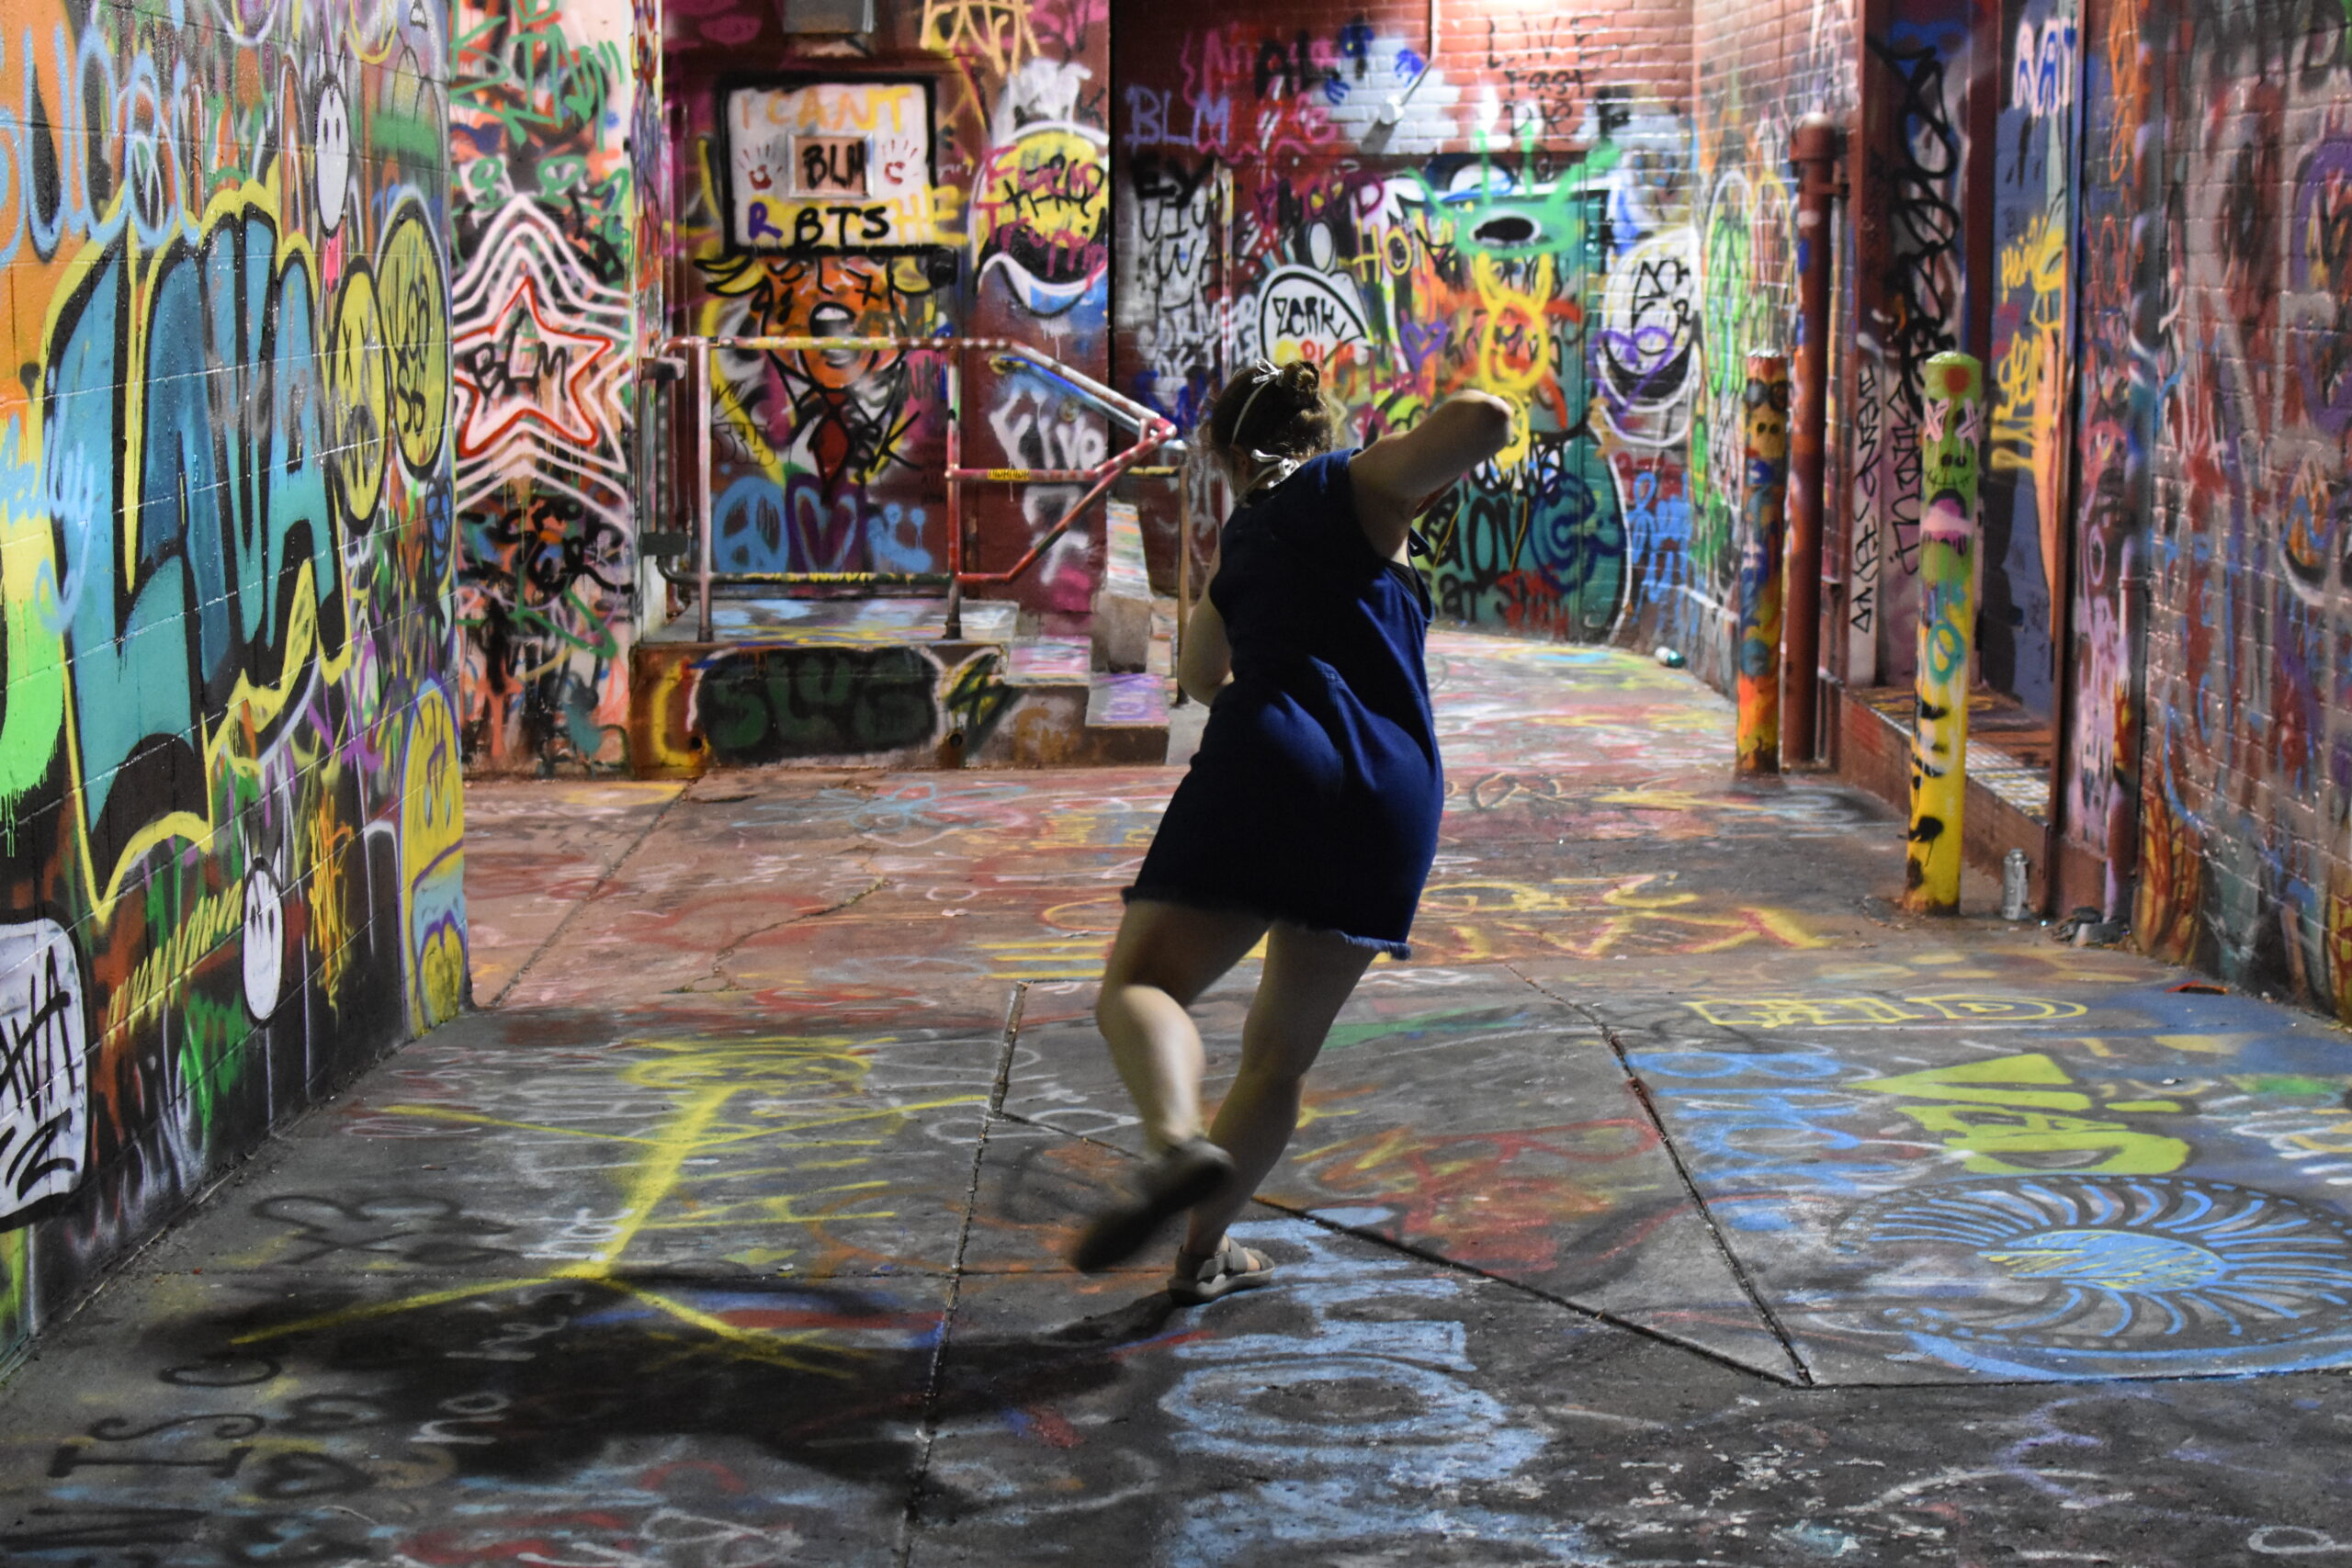 hrough live-streaming and other technologies, Ann Arbor alleyways and parks become outdoor stages accessible to many.